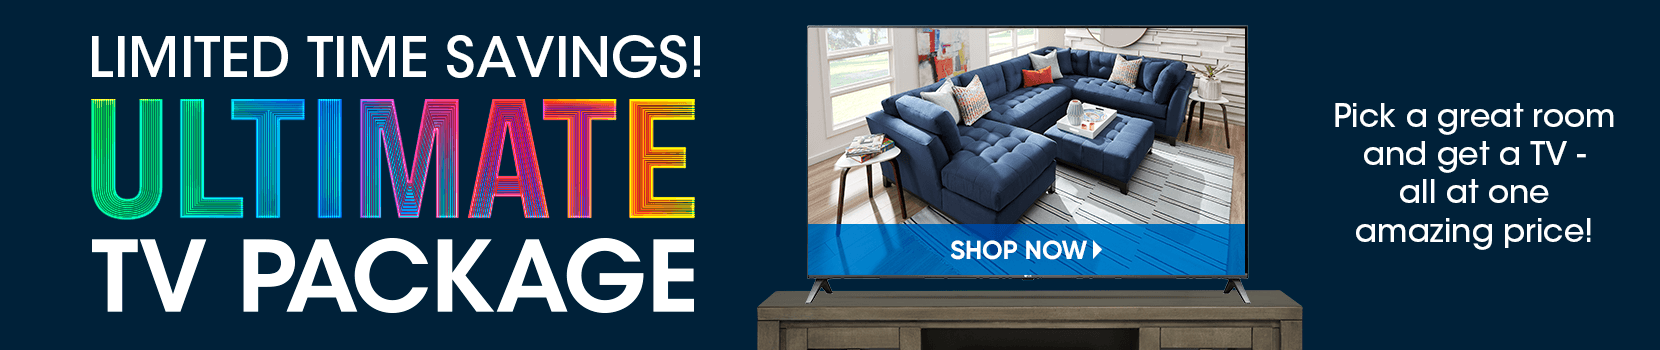 limited time savings! ultimate tv package. pick a great room and get a tv - all at one amazing price! shop now